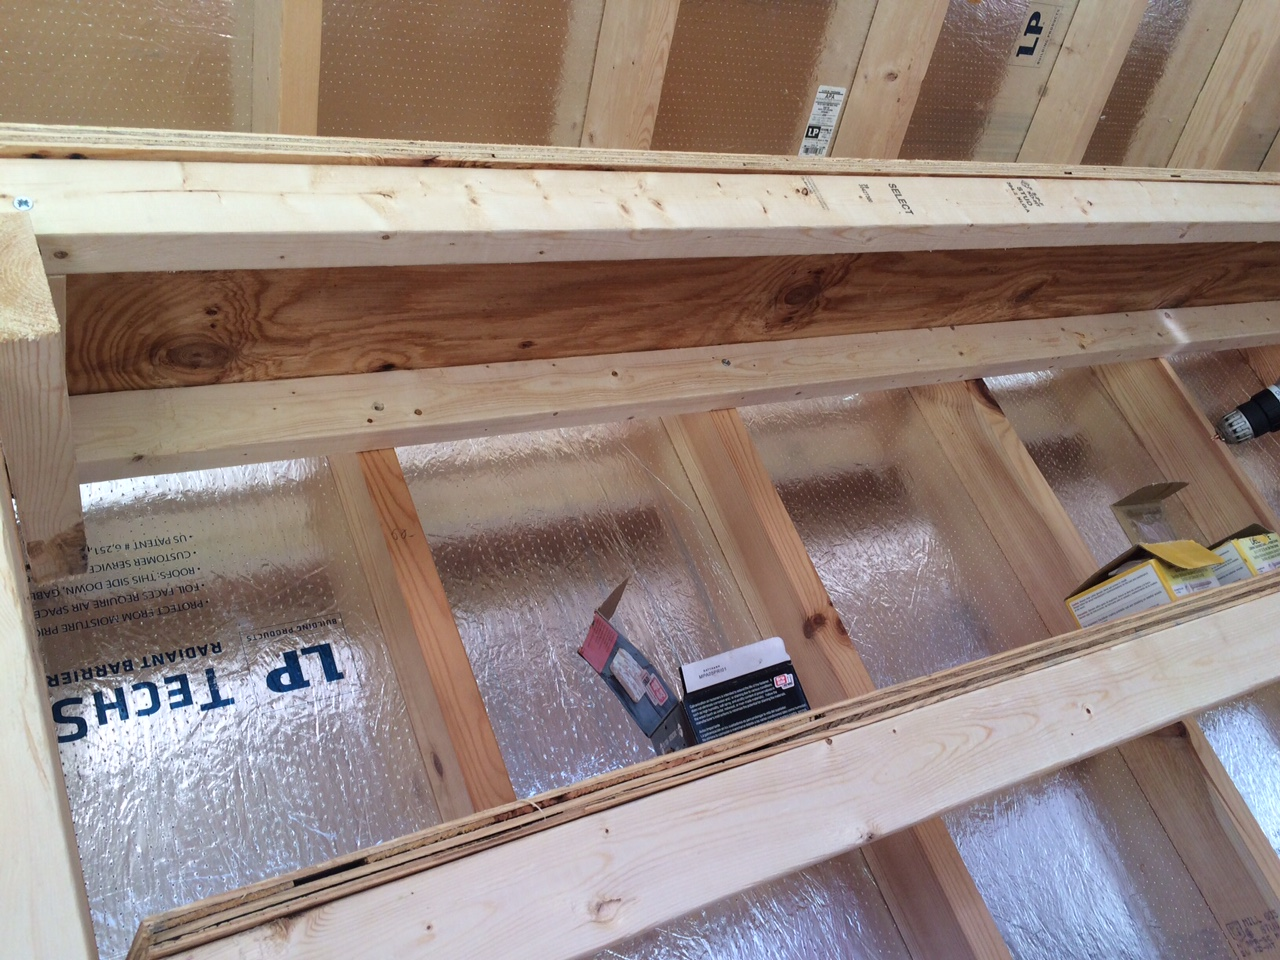 Superbe How To Build Shed Shelving: Photo Of The Shelving From Underneath.  #woodworking #